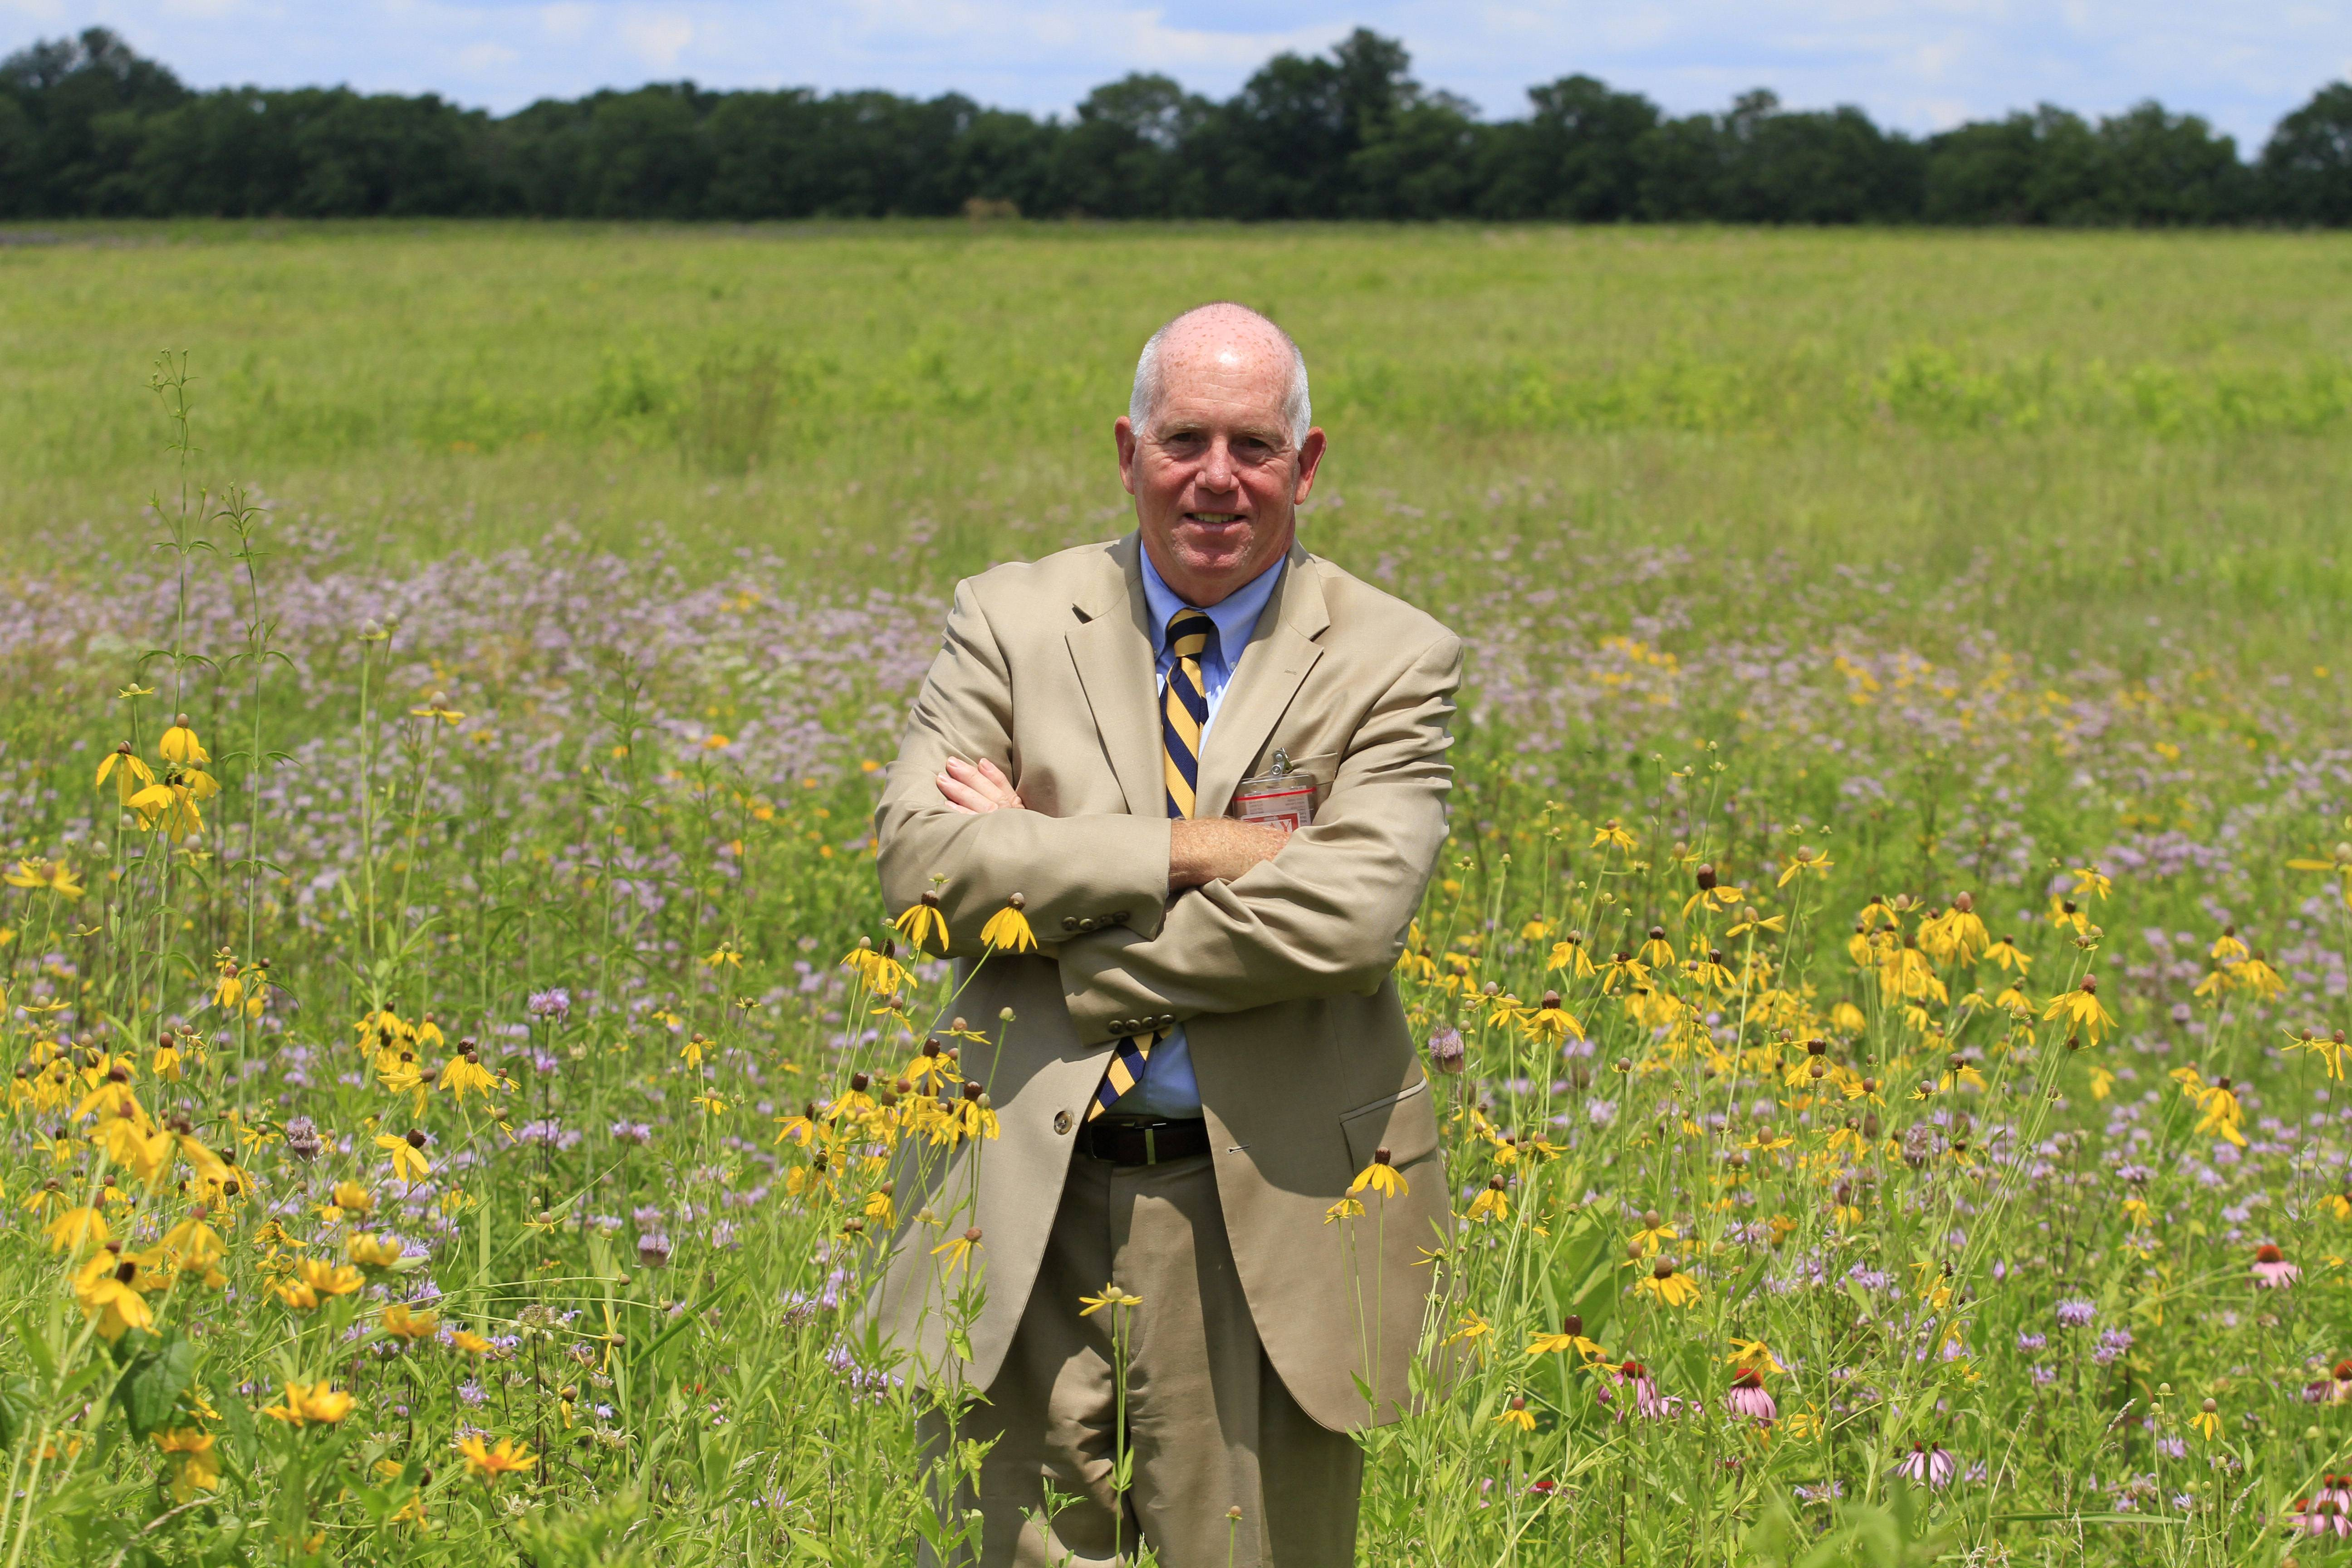 Terrence Slaybaugh, director of aviation for Dayton International Airport, at one of the airport's prairies in Vandalia, Ohio. In an effort to keep birds away from aircraft, the airport is experimenting by planting the tall prairie grass. Heavy birds like geese, which cause the most damage to planes, are believed to avoid long grasses because they fear predators might be hiding within.